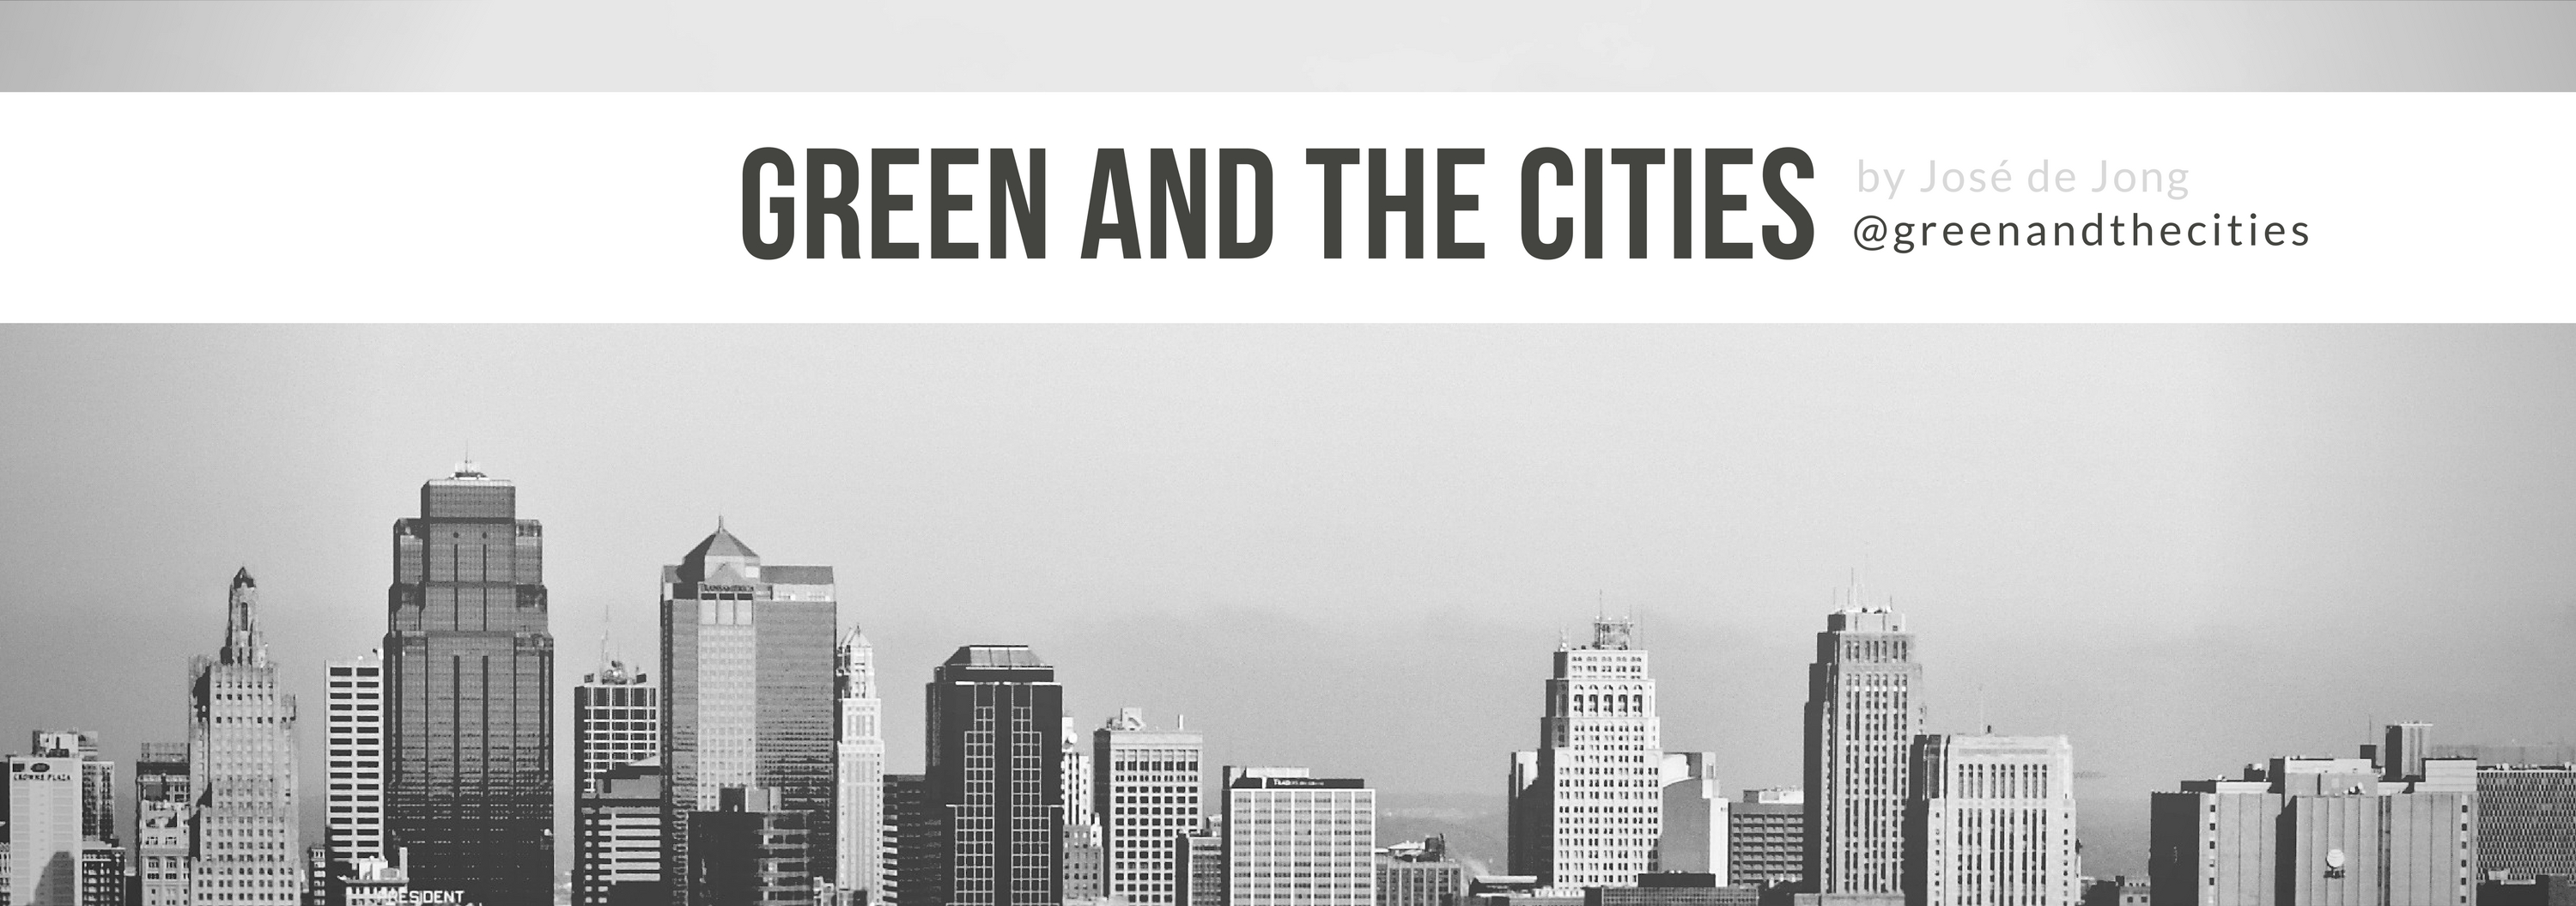 green and the cities